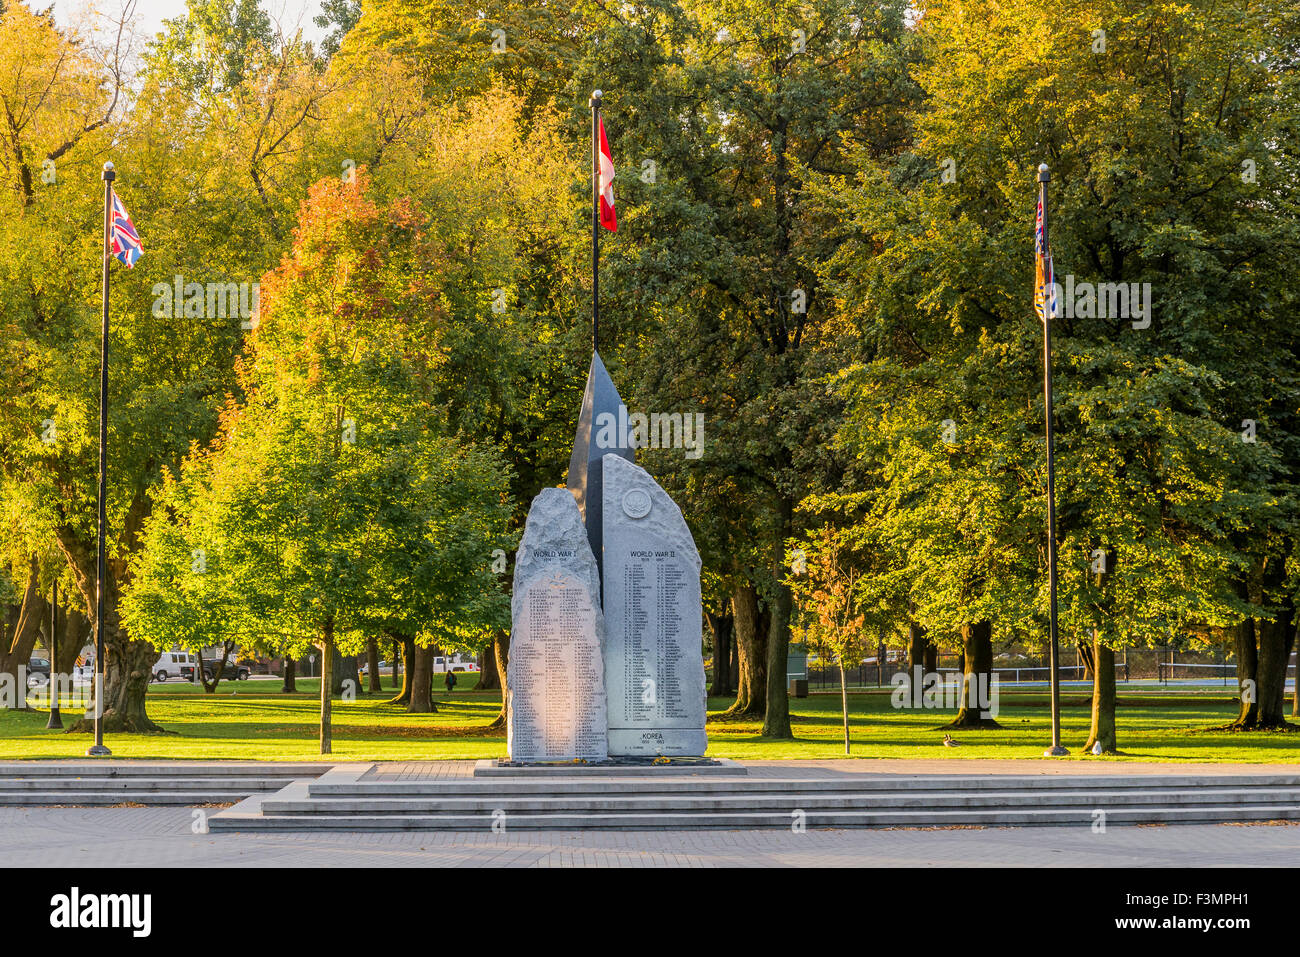 Cenotaph, City Park, Kelowna, Okanagan Valley, British Columbia, Canada - Stock Image